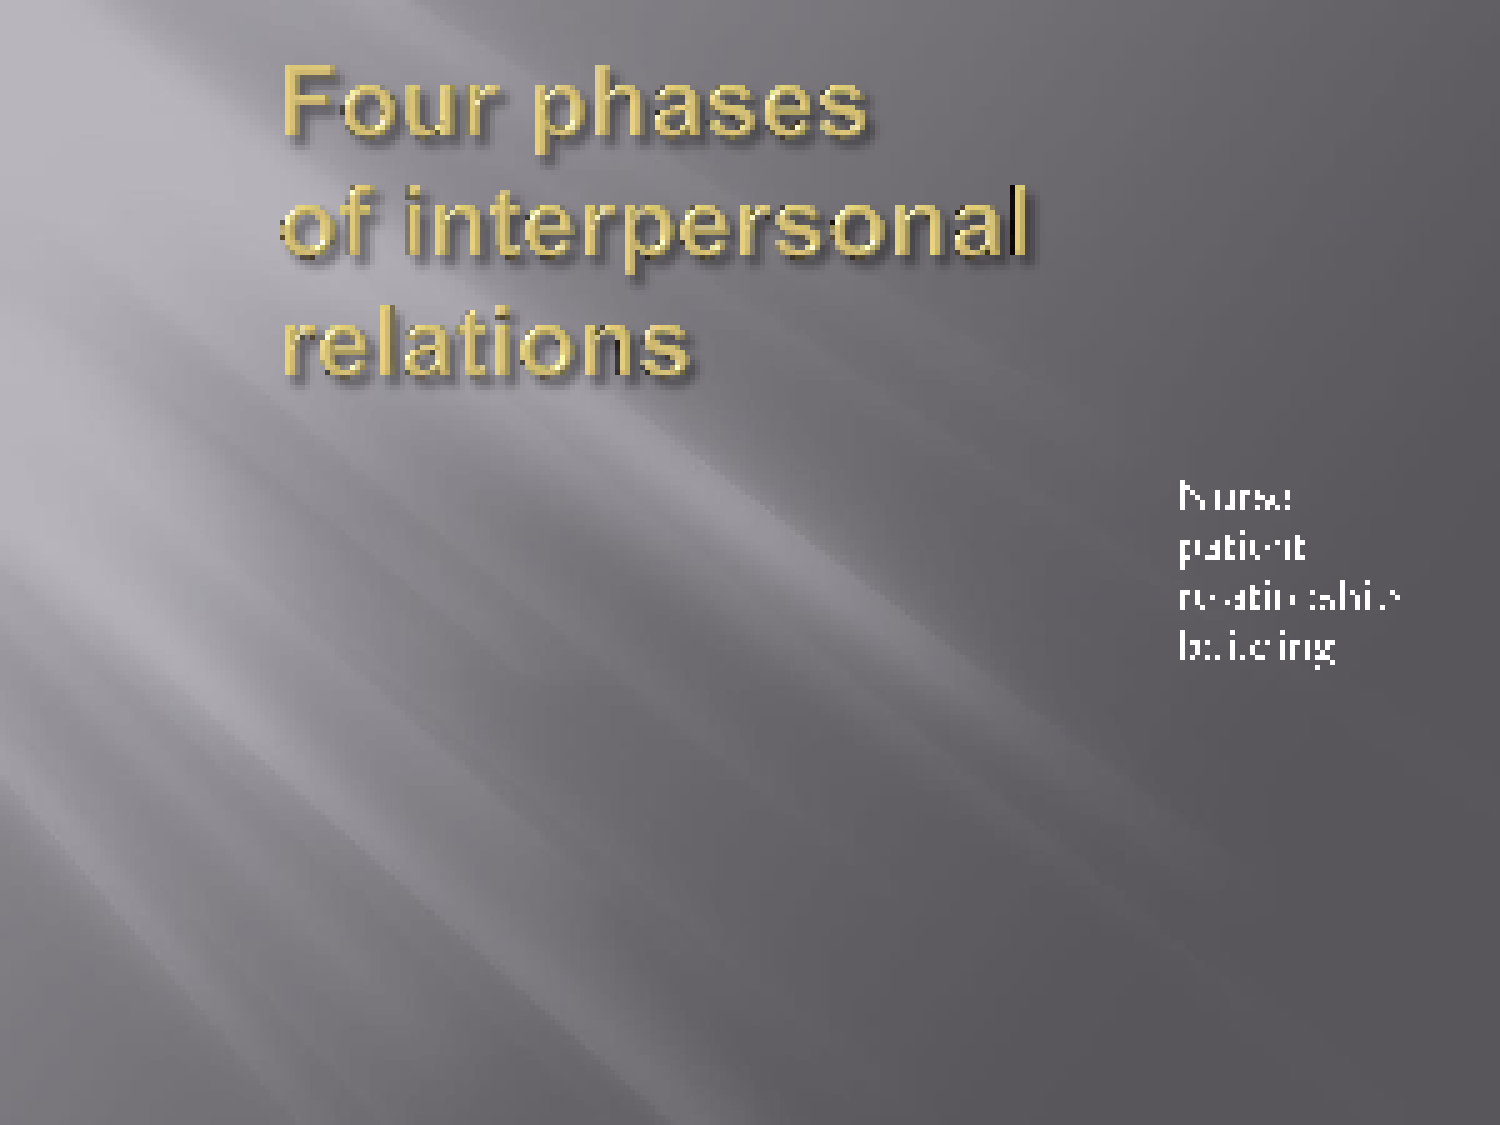 nursing theorist powerpoint presentation peplau s interpersonal interpersonal relations in nursingnursing theoryhildegard peplau published interpersonalrelations in nursing in 1952 changed the nurse patient relationship